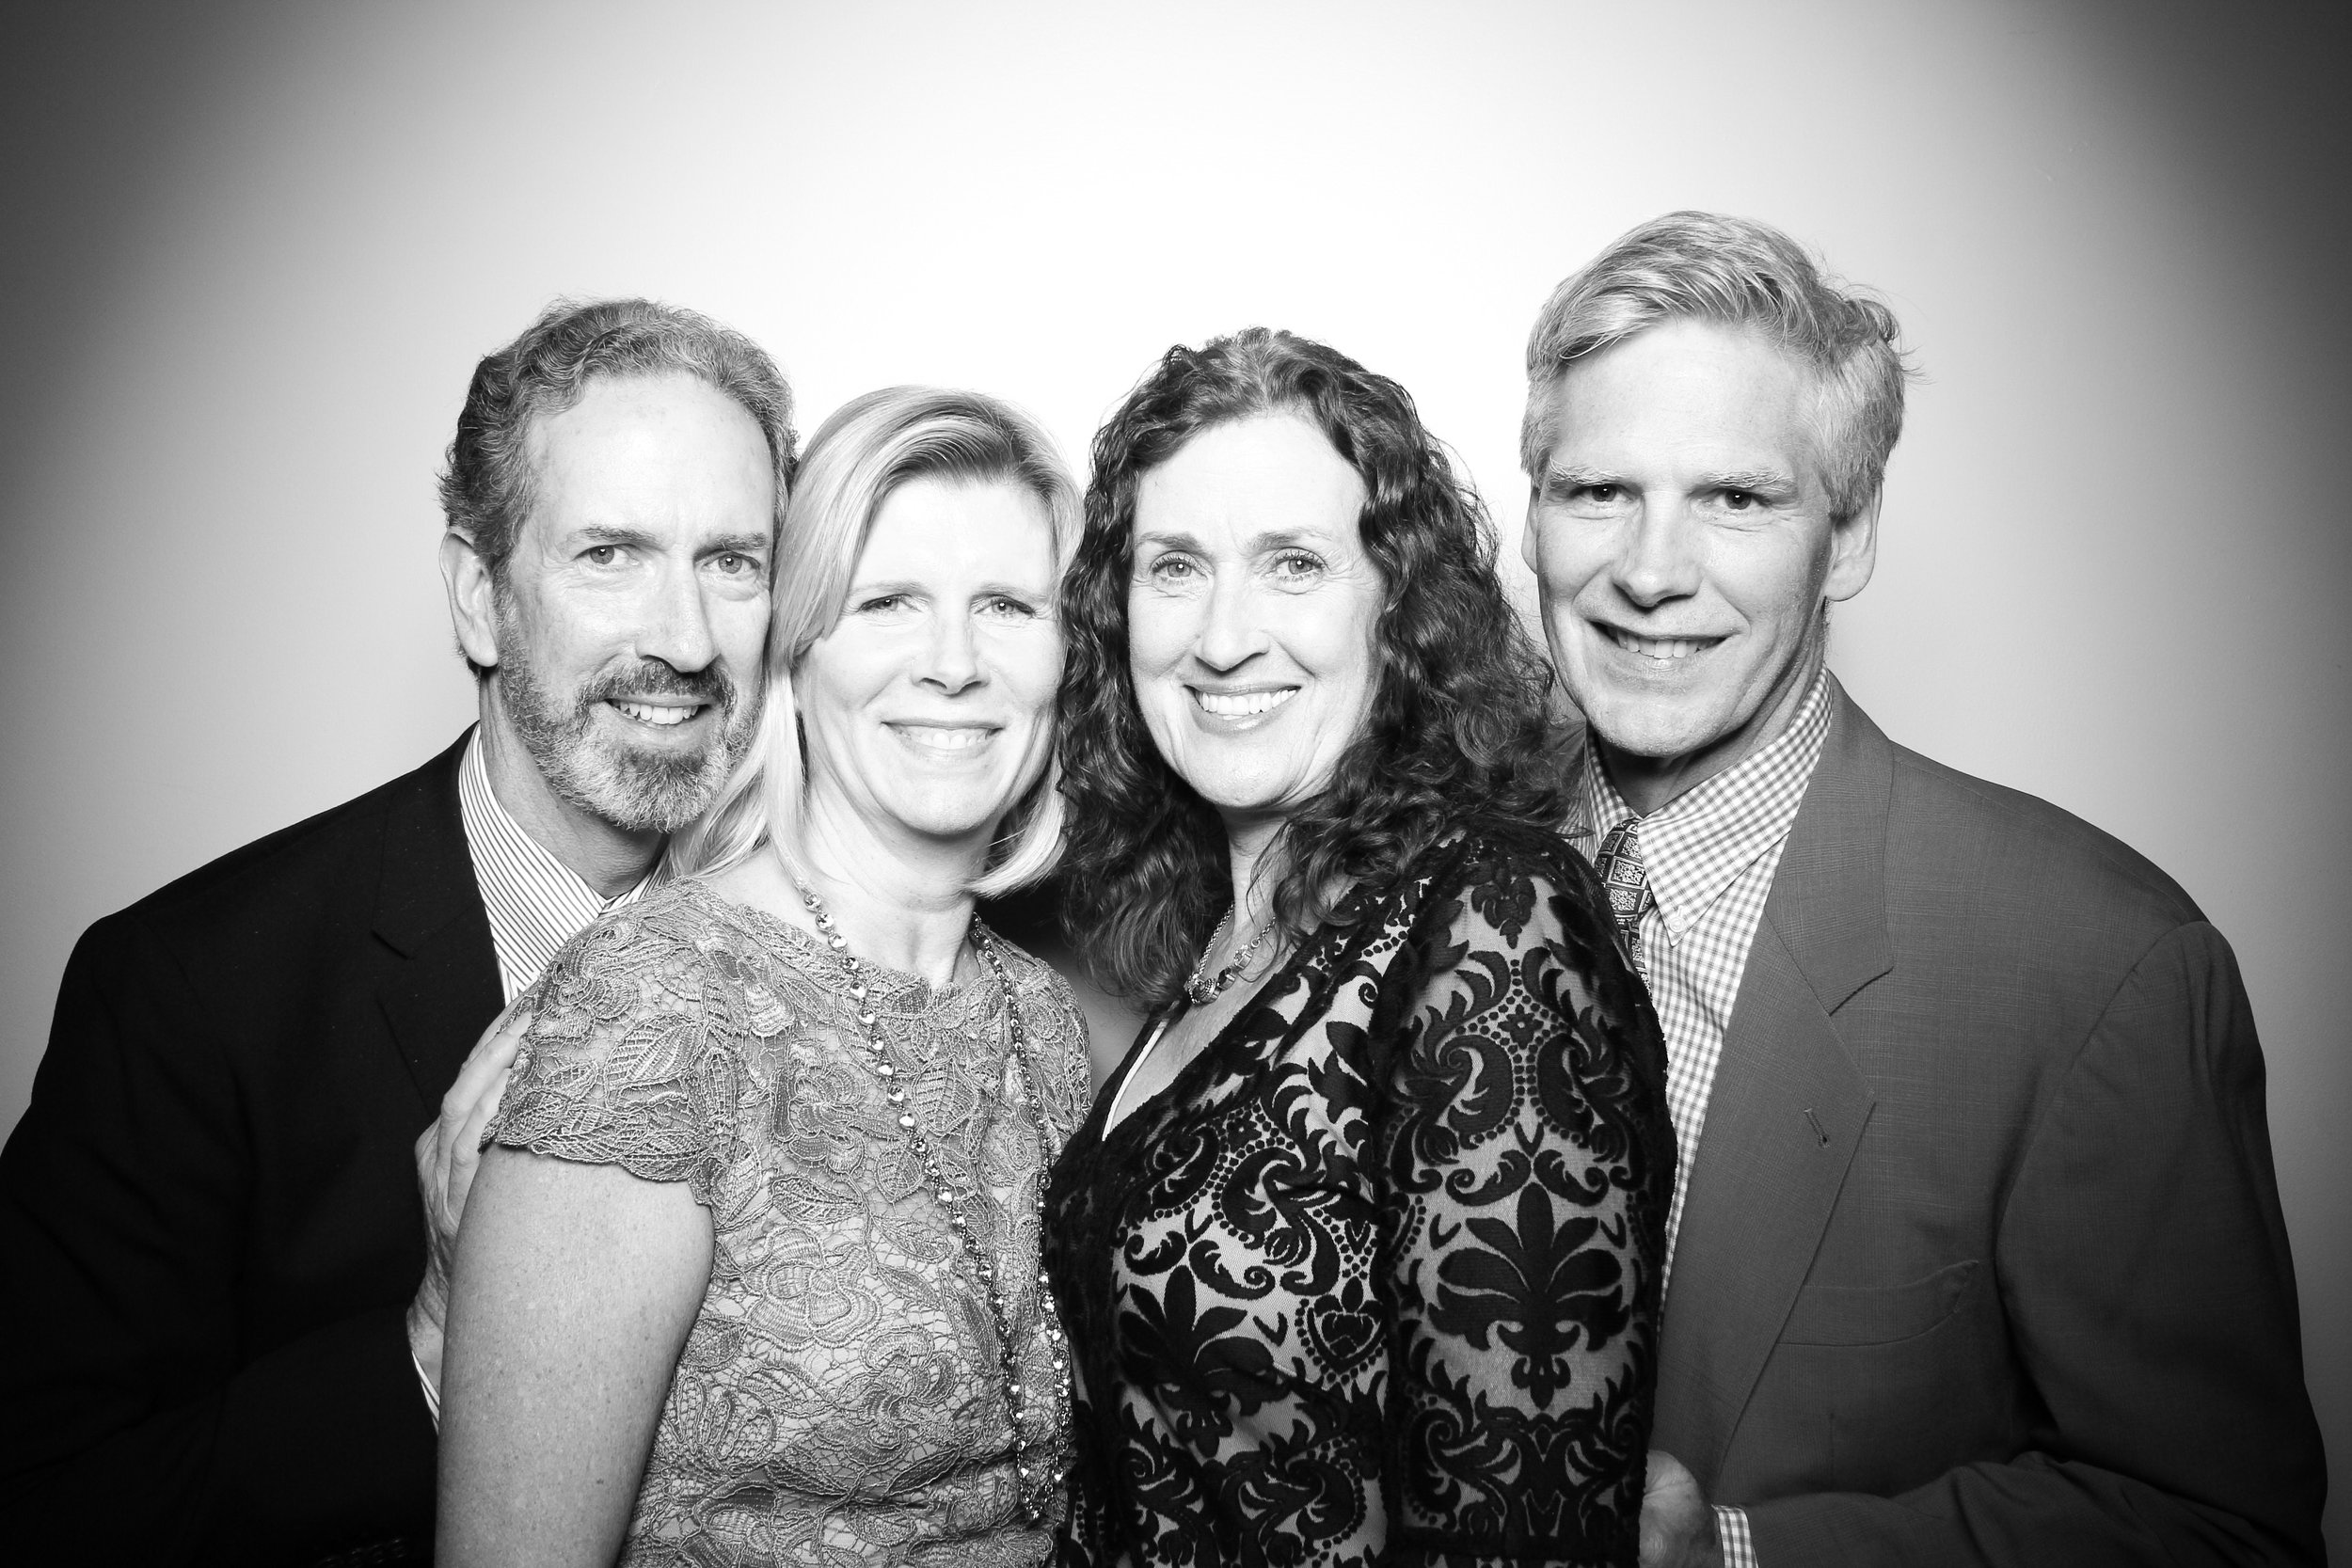 Chicago_Vintage_Wedding_Photobooth_Ravenswood_06.jpg